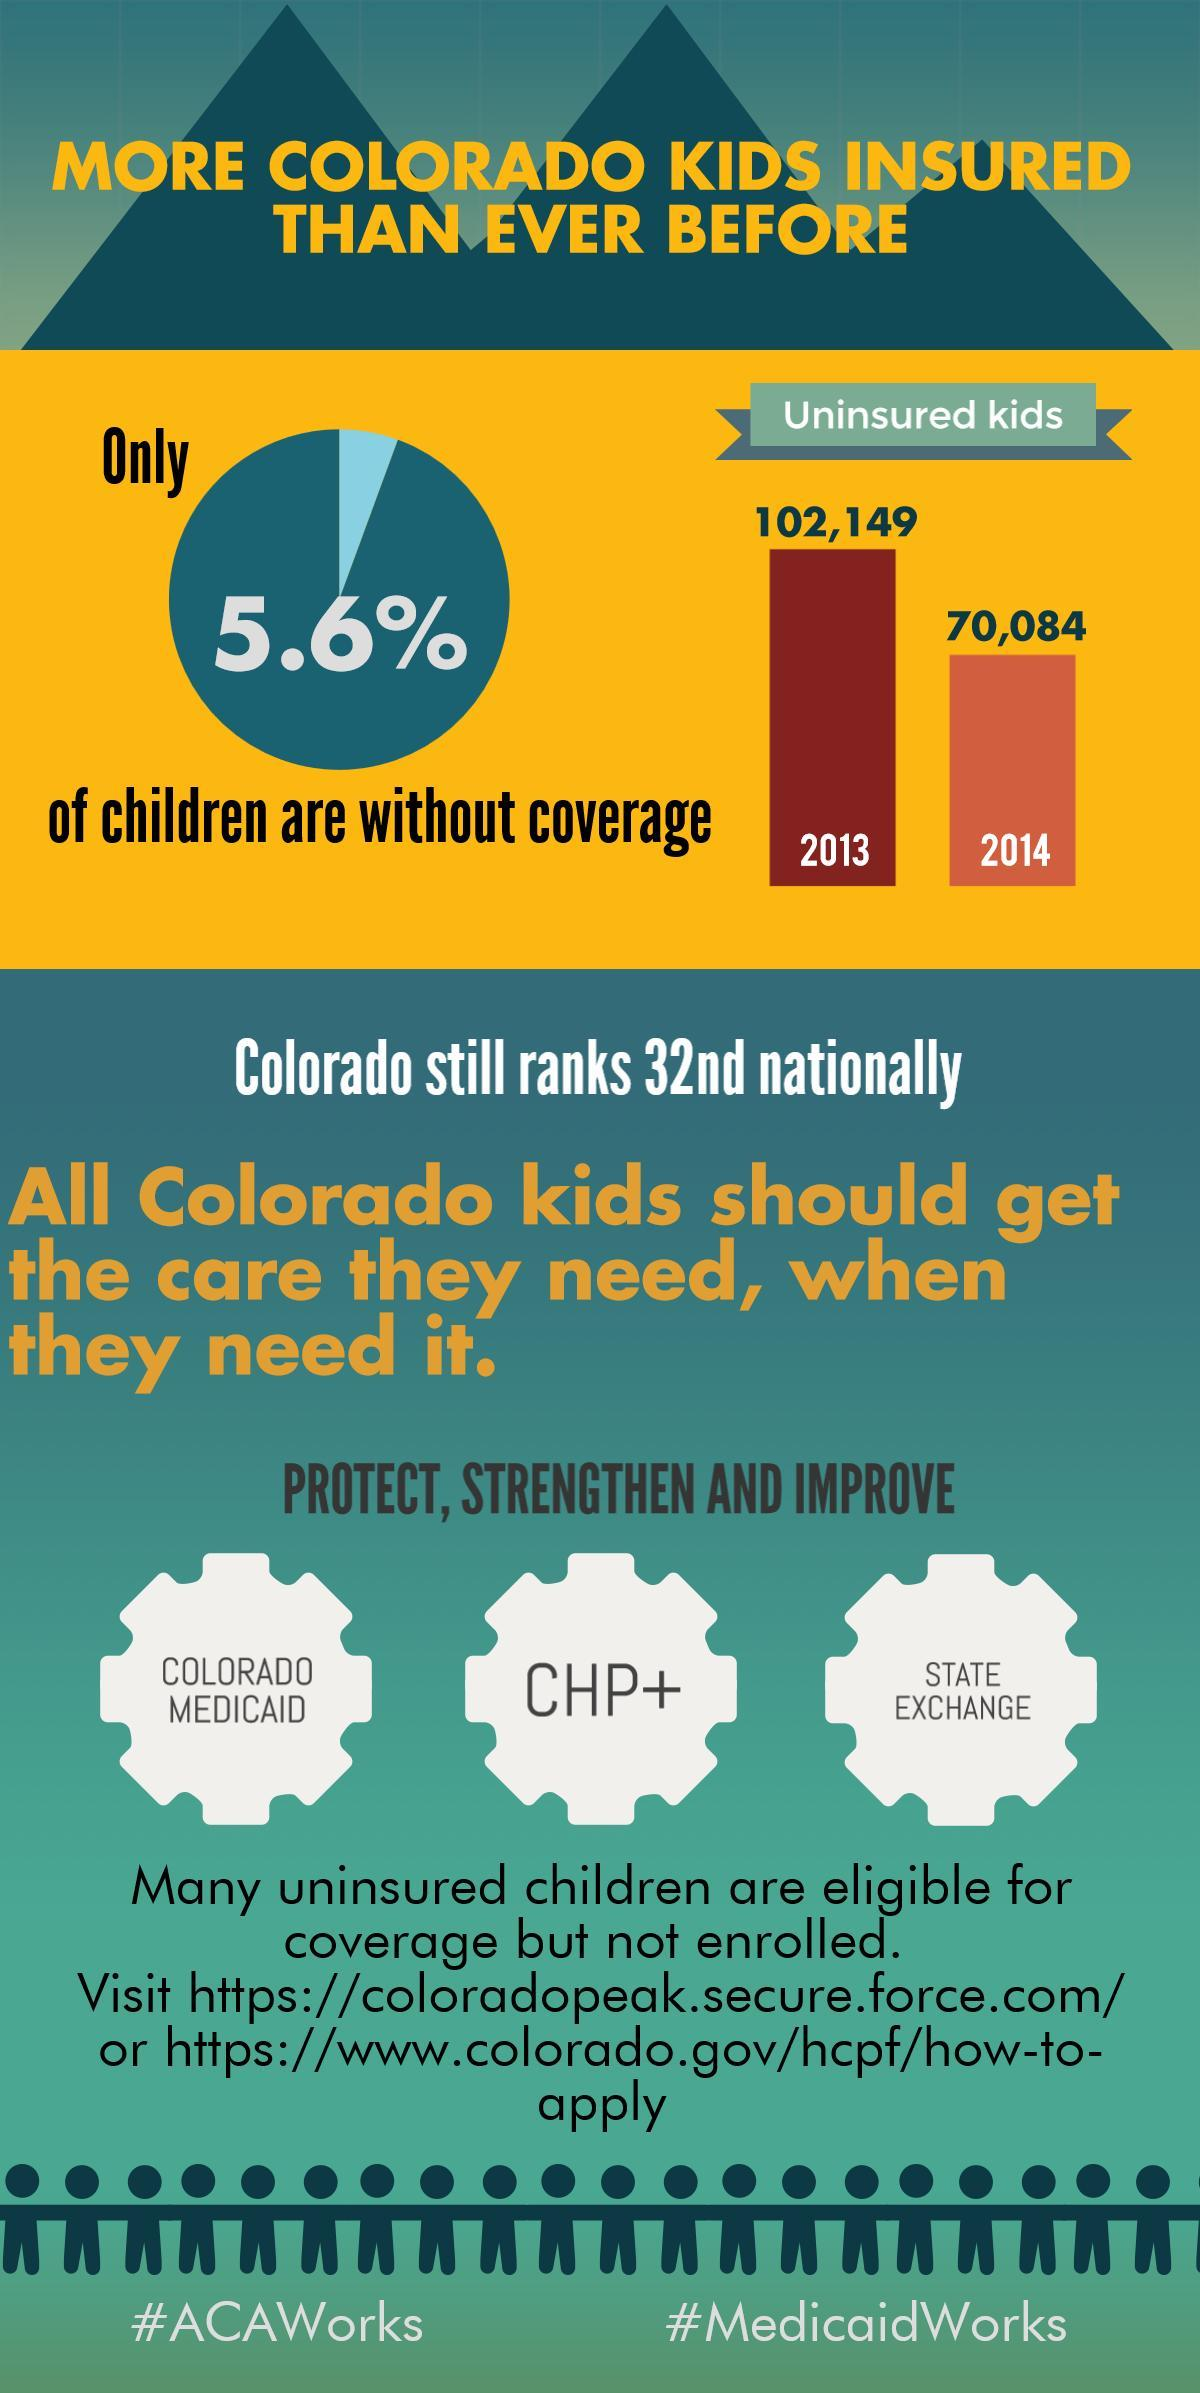 Report: The Affordable Care Act is Helping Cover Colorado